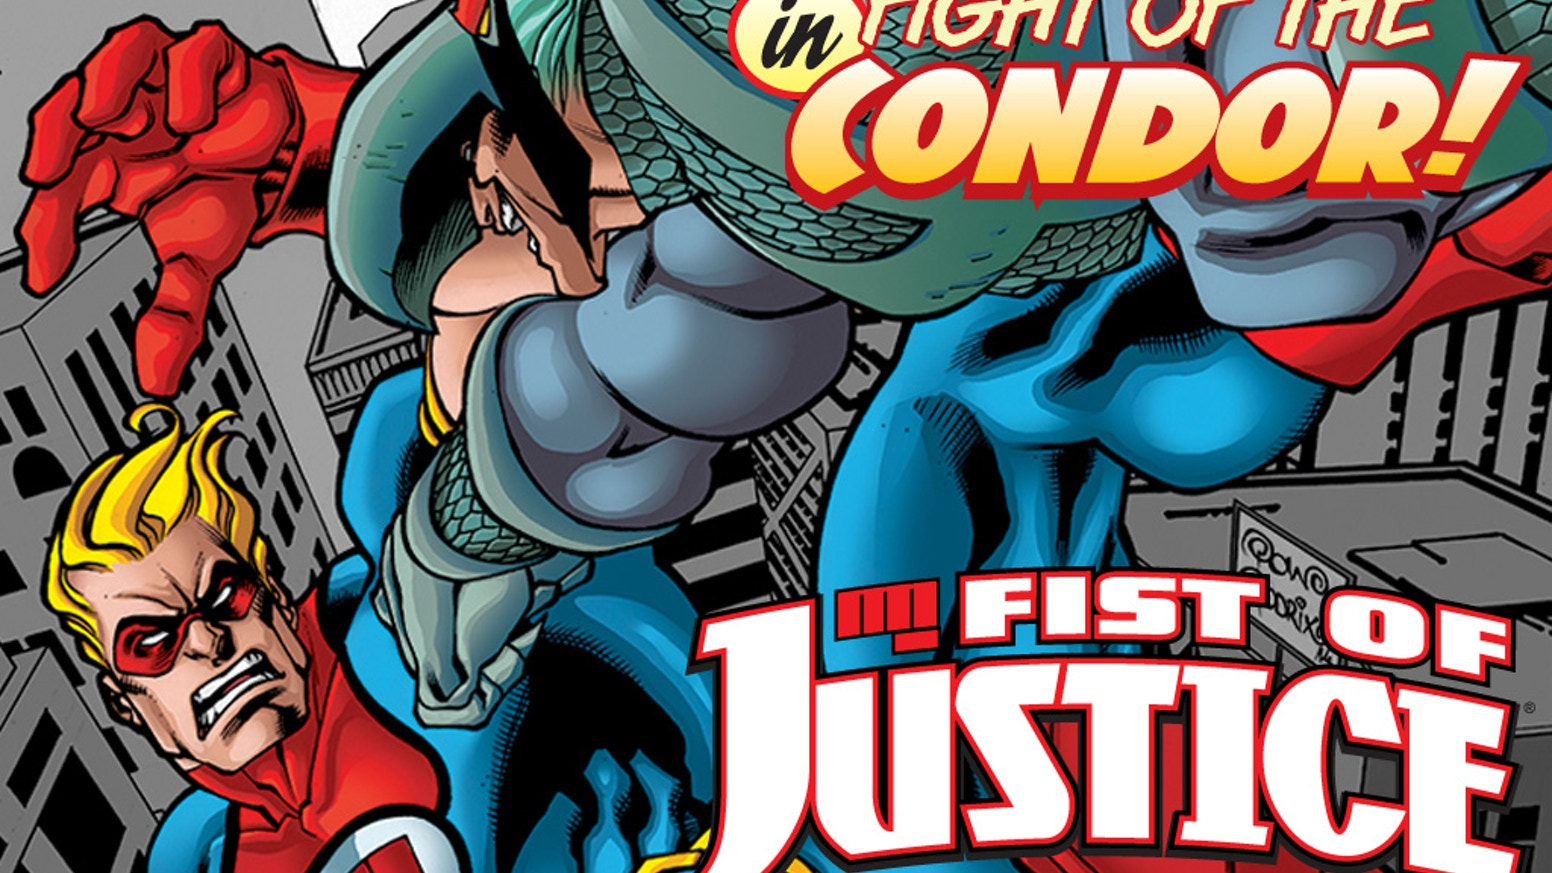 Fist of Justice was the Greatest Defender of Charm City in the 70s and now he's back. But things in the 21st Century are... different.